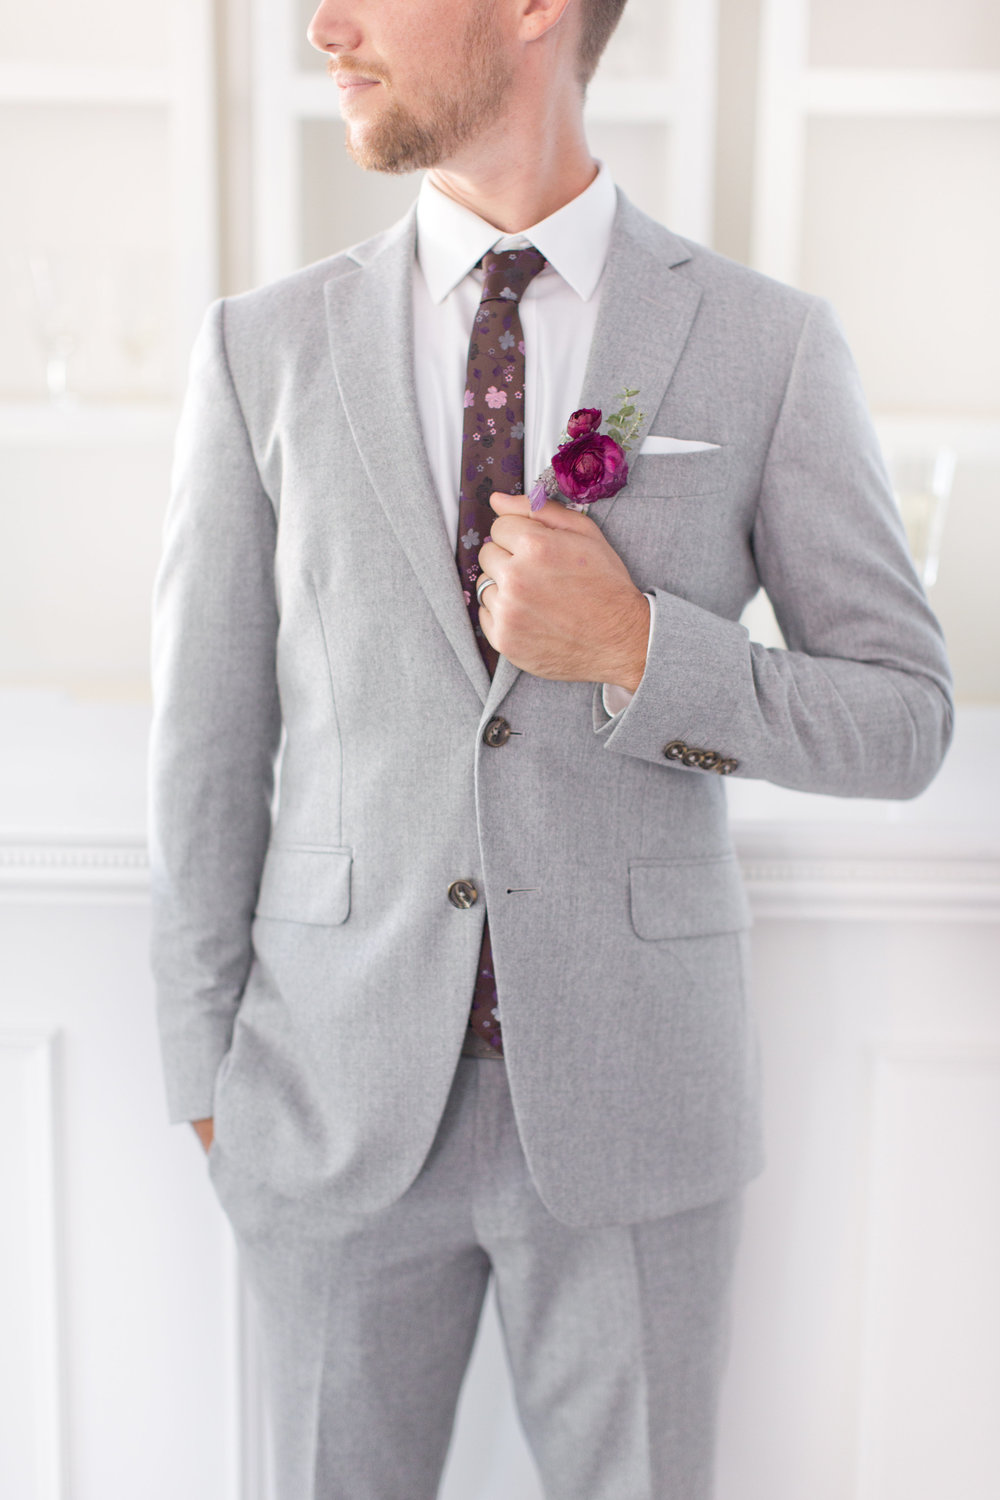 groom-custom-grey-suit.jpg